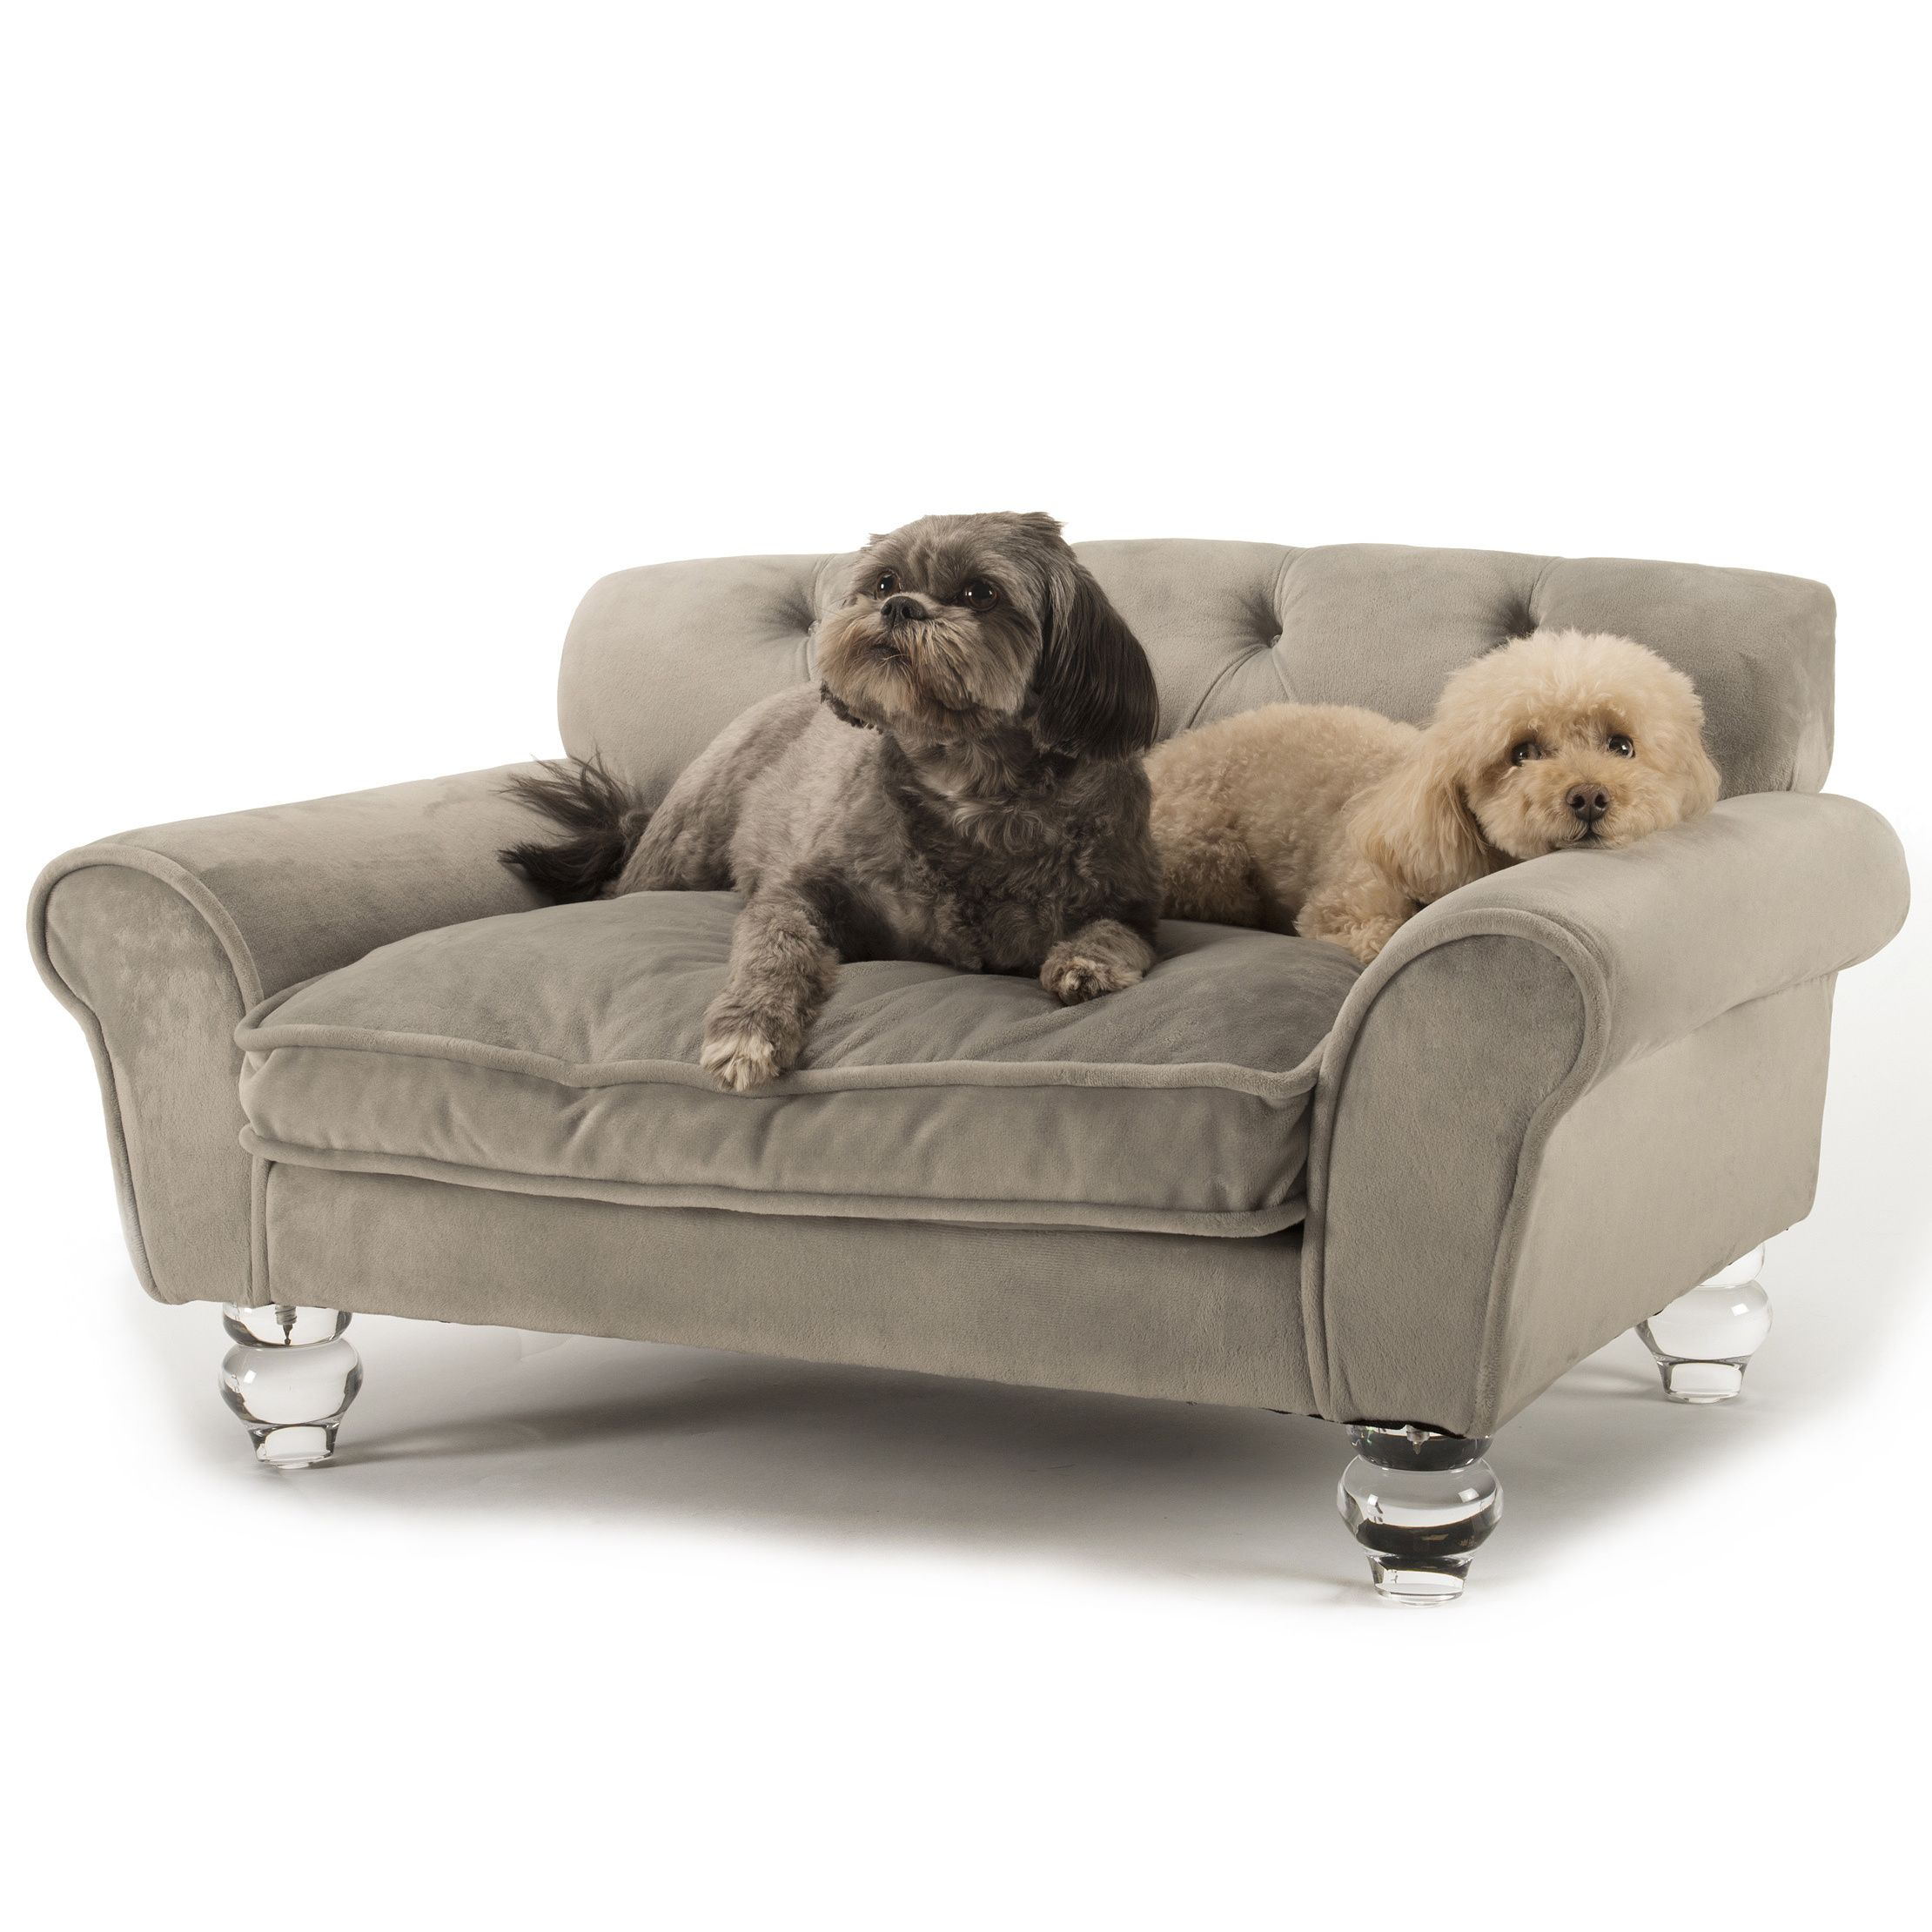 La Joie is a luxurious velvet pet bed accented with deep tufting